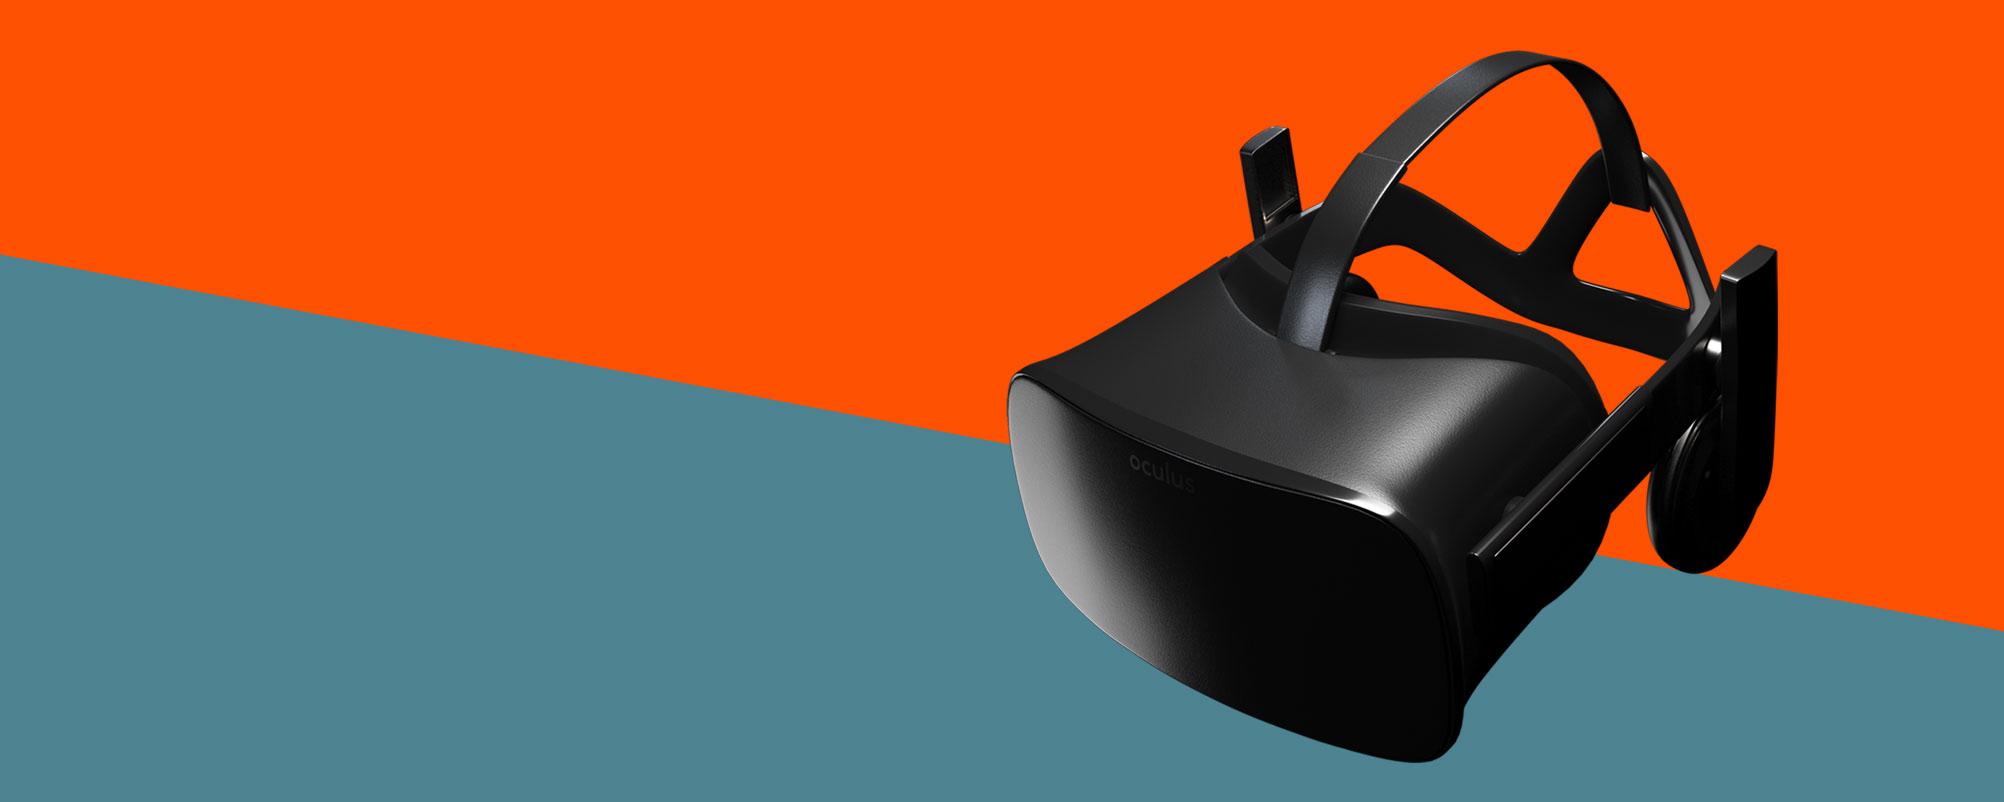 Using VR For Marketing